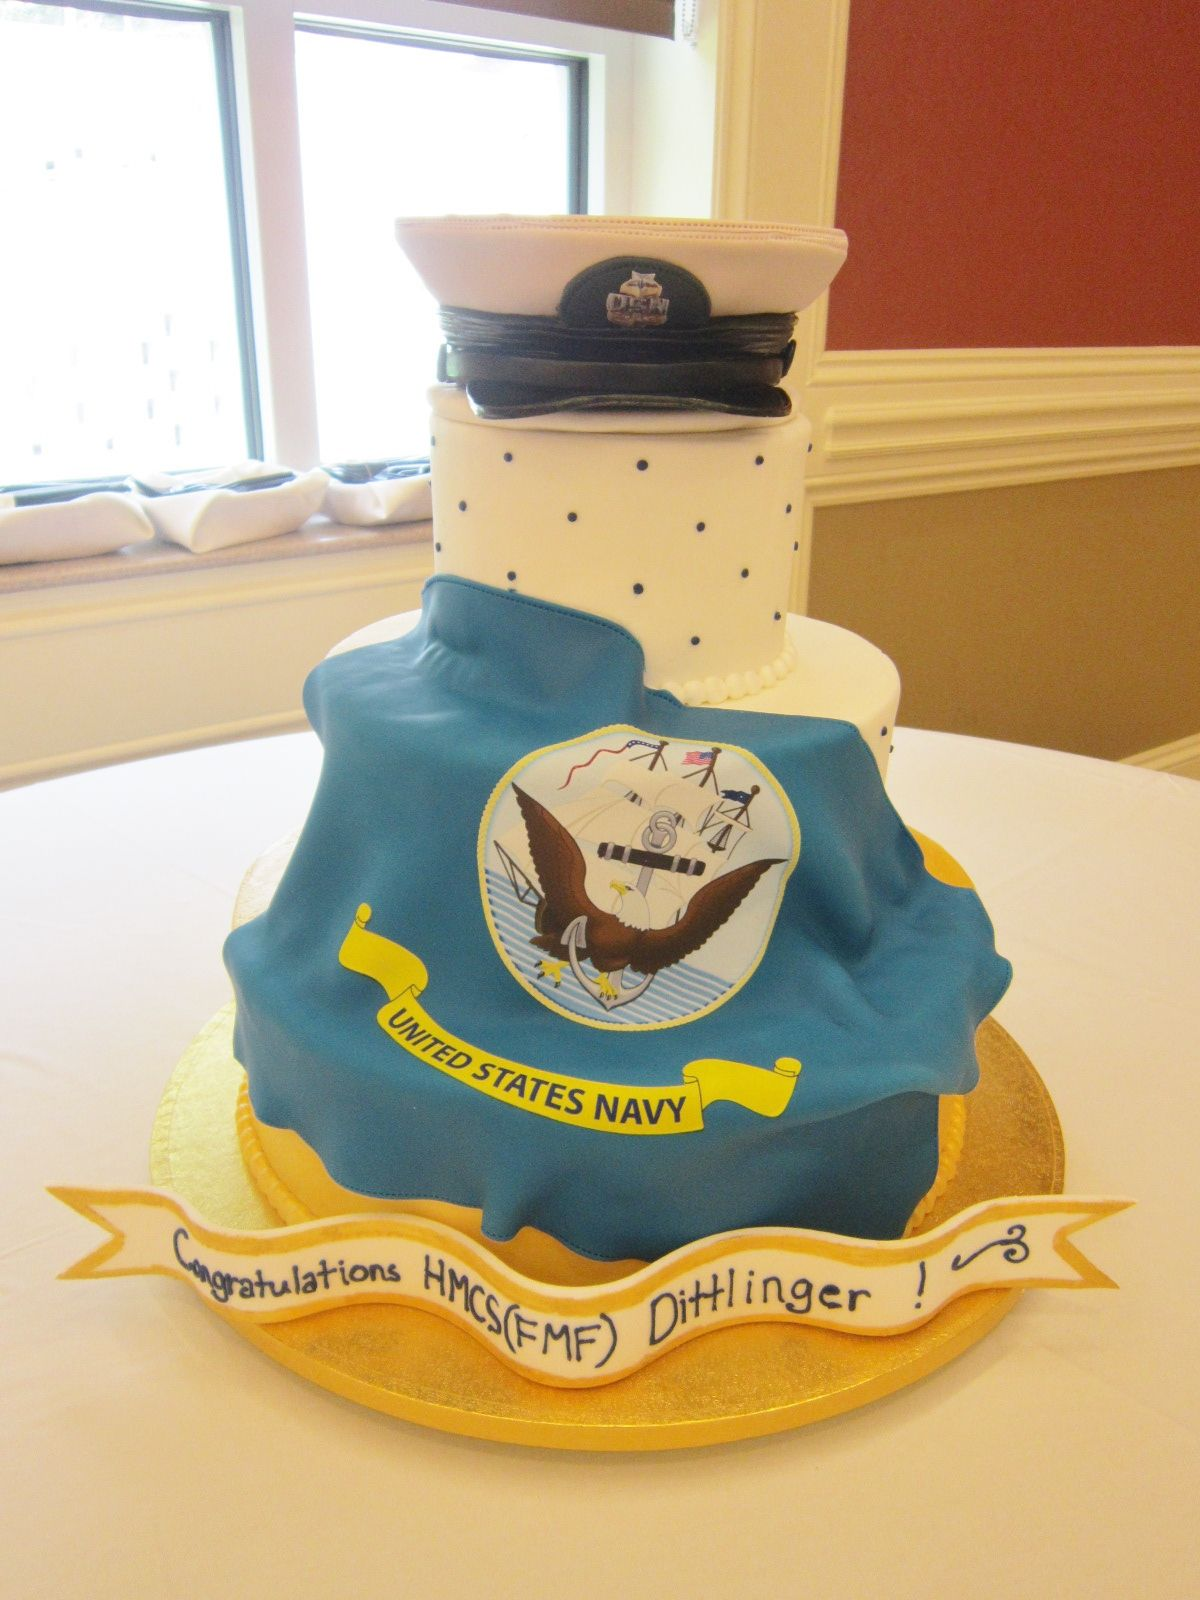 US Navy Retirement cake by USN